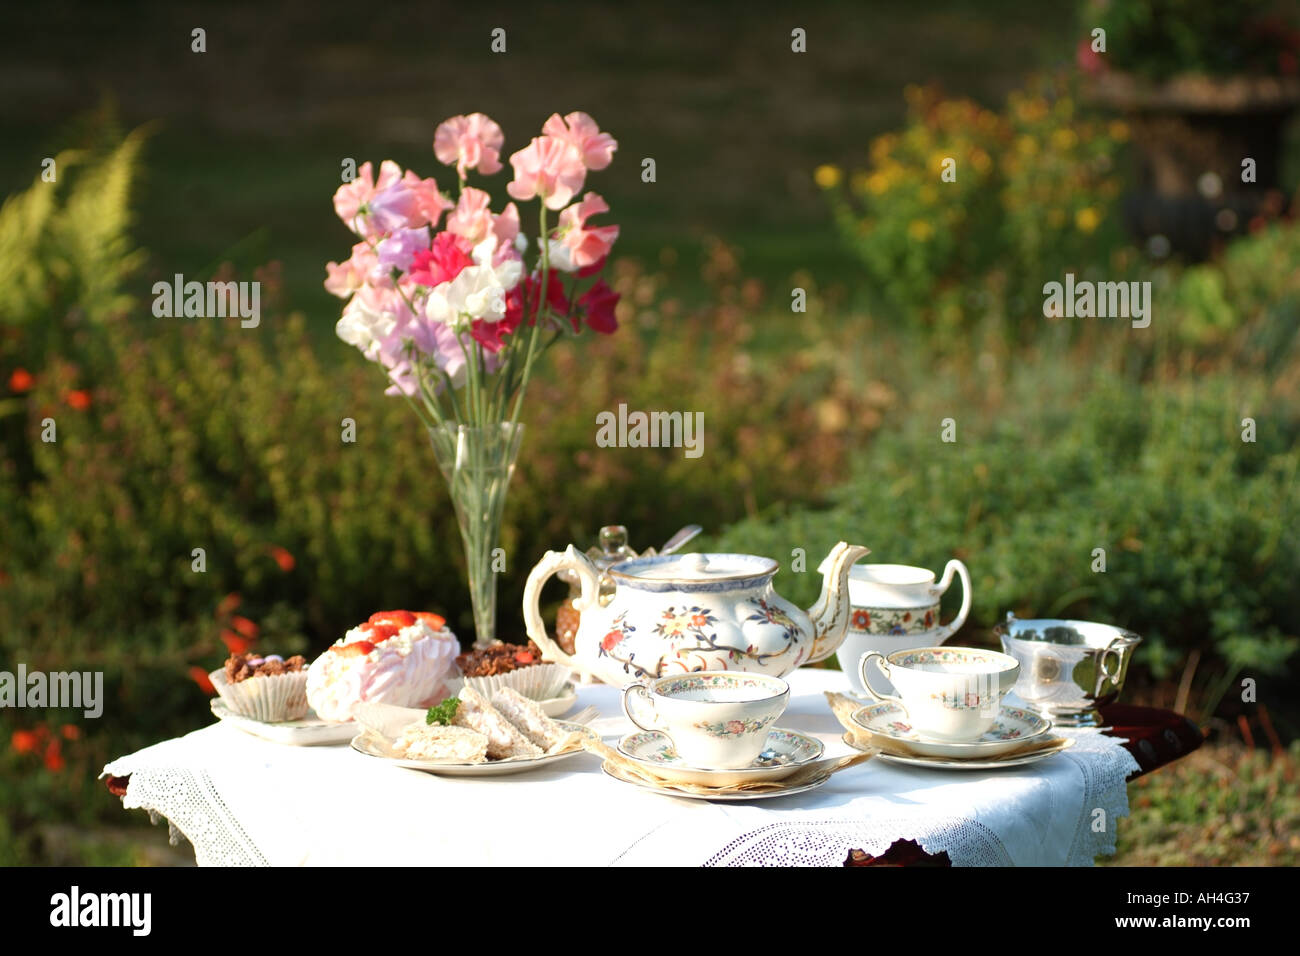 English country garden paintings - Stock Photo Afternoon Tea Set On The Lawn In English Country Garden